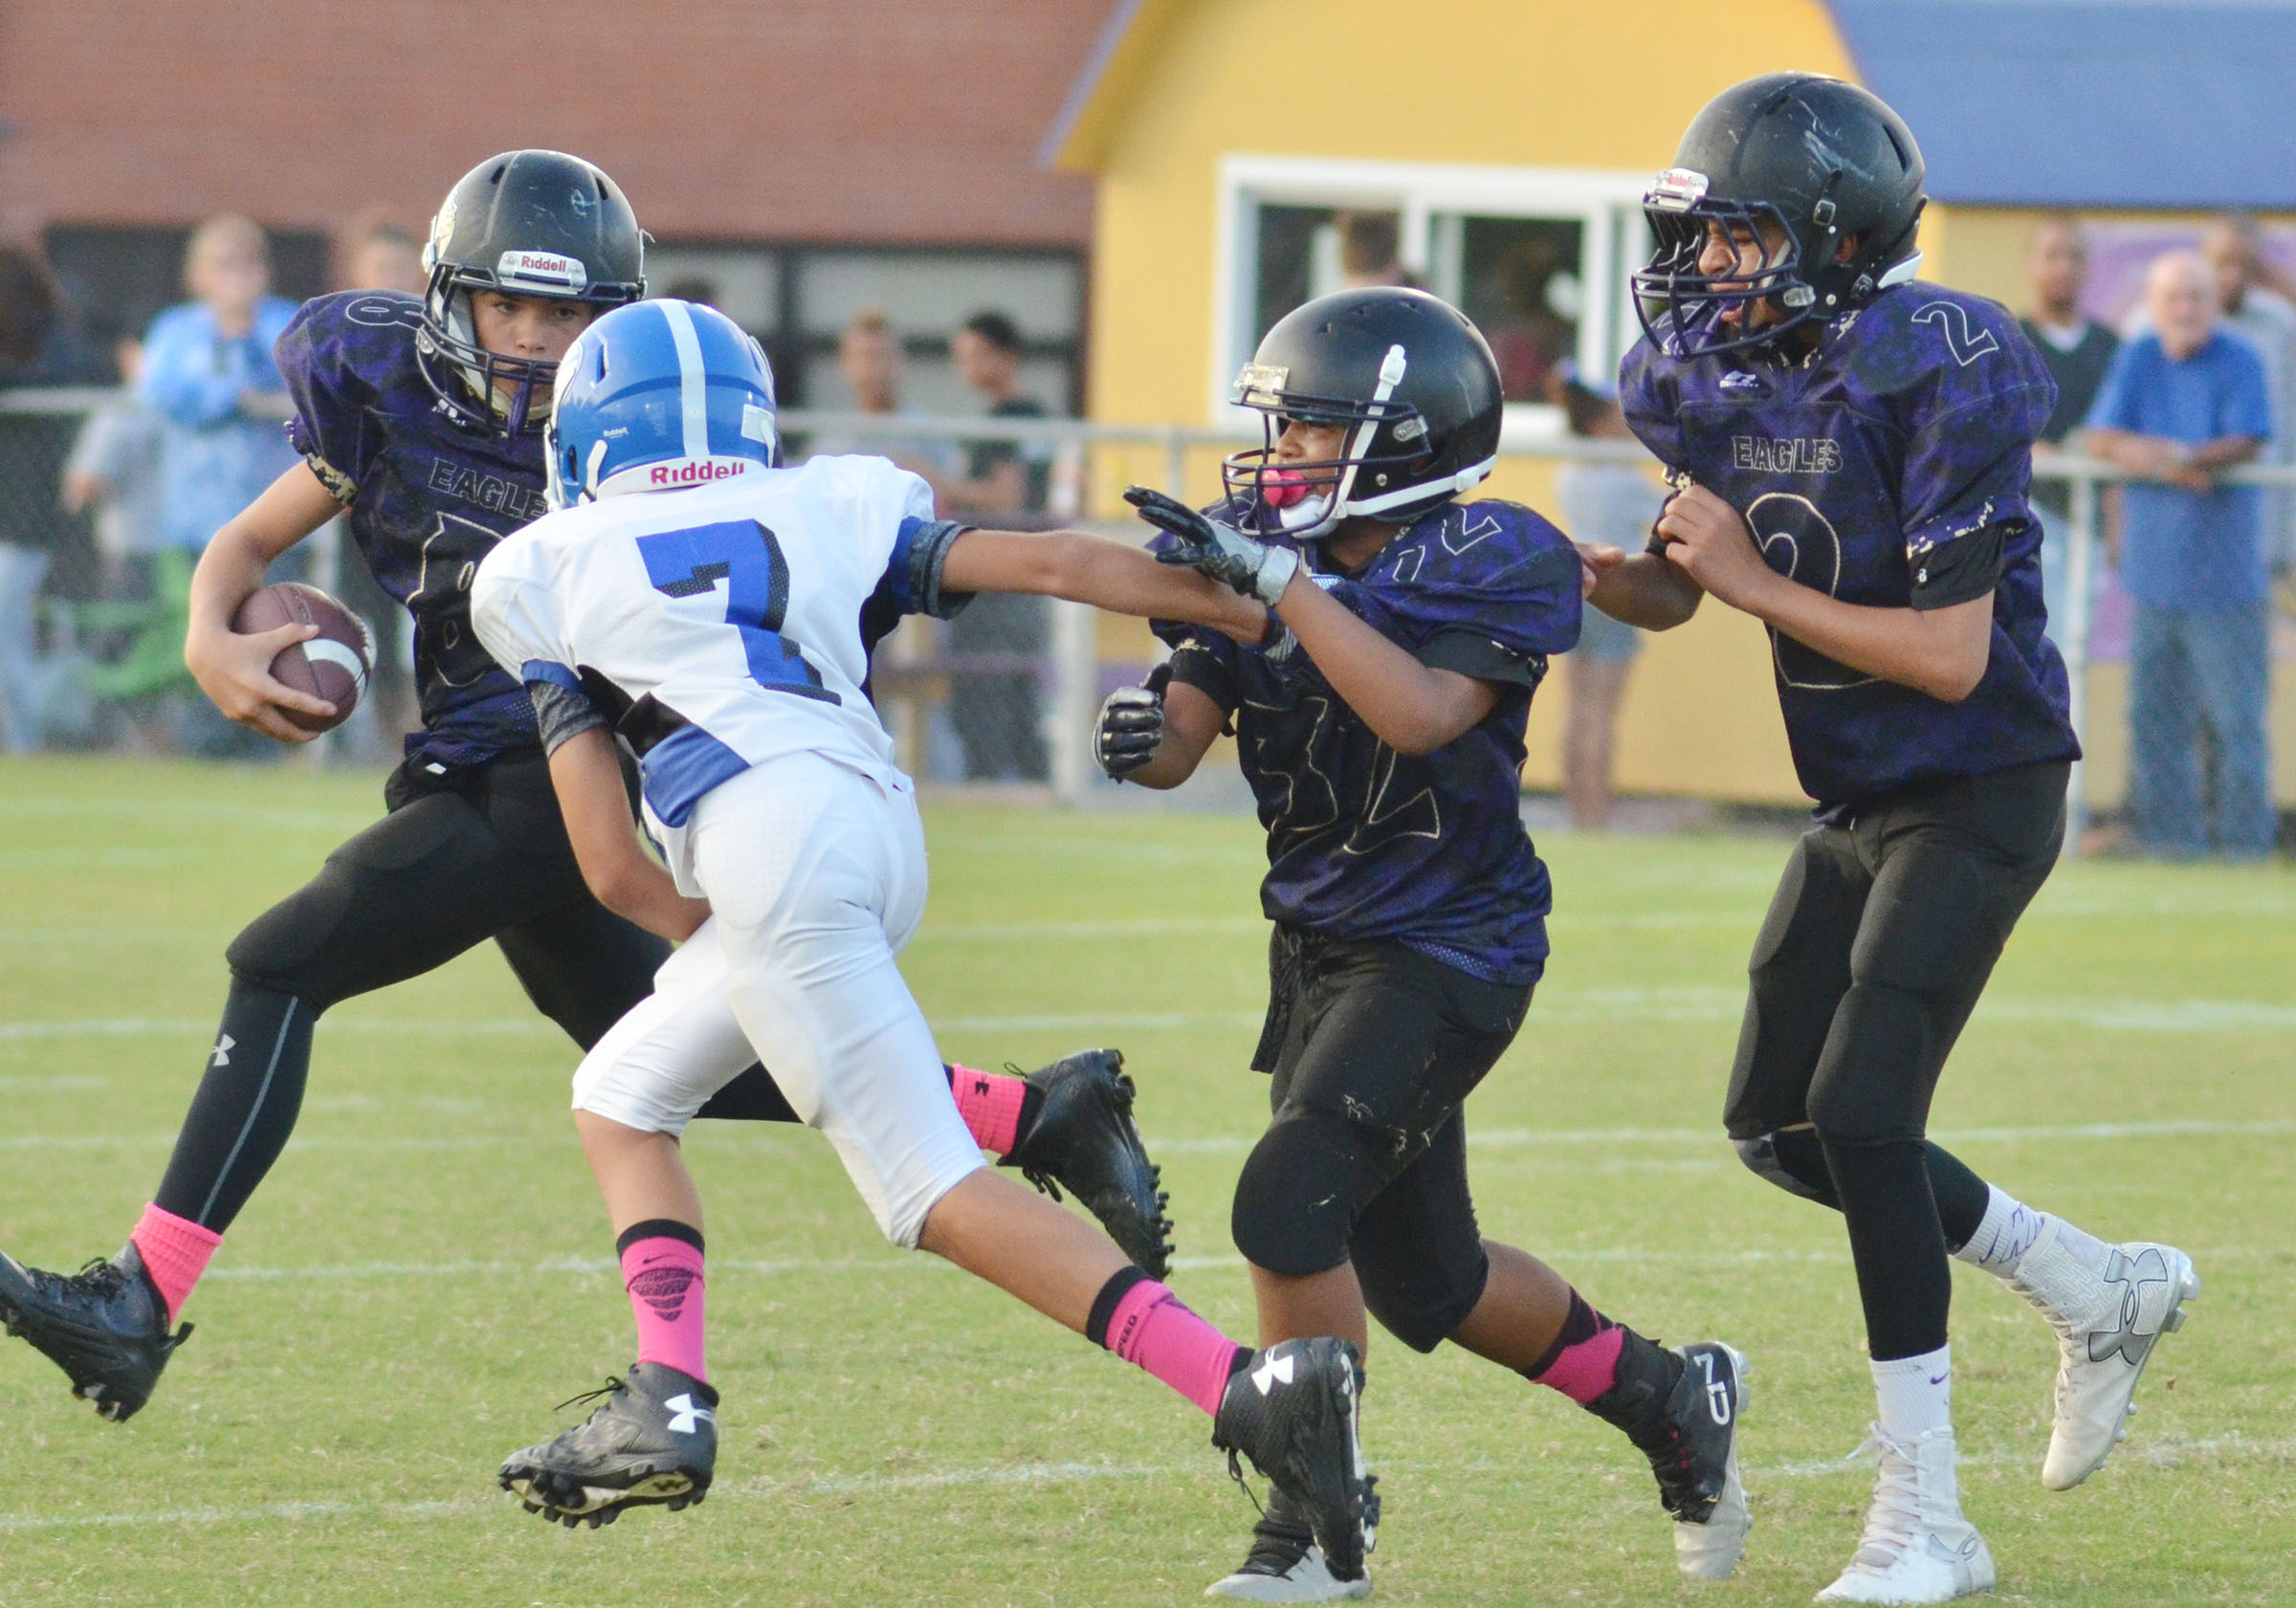 CMS sixth-grader Gavin Oliver runs the ball as teammates Deondre' Weathers, also a sixth-grader, and seventh-grader Adrien Smith, at right, block for him.